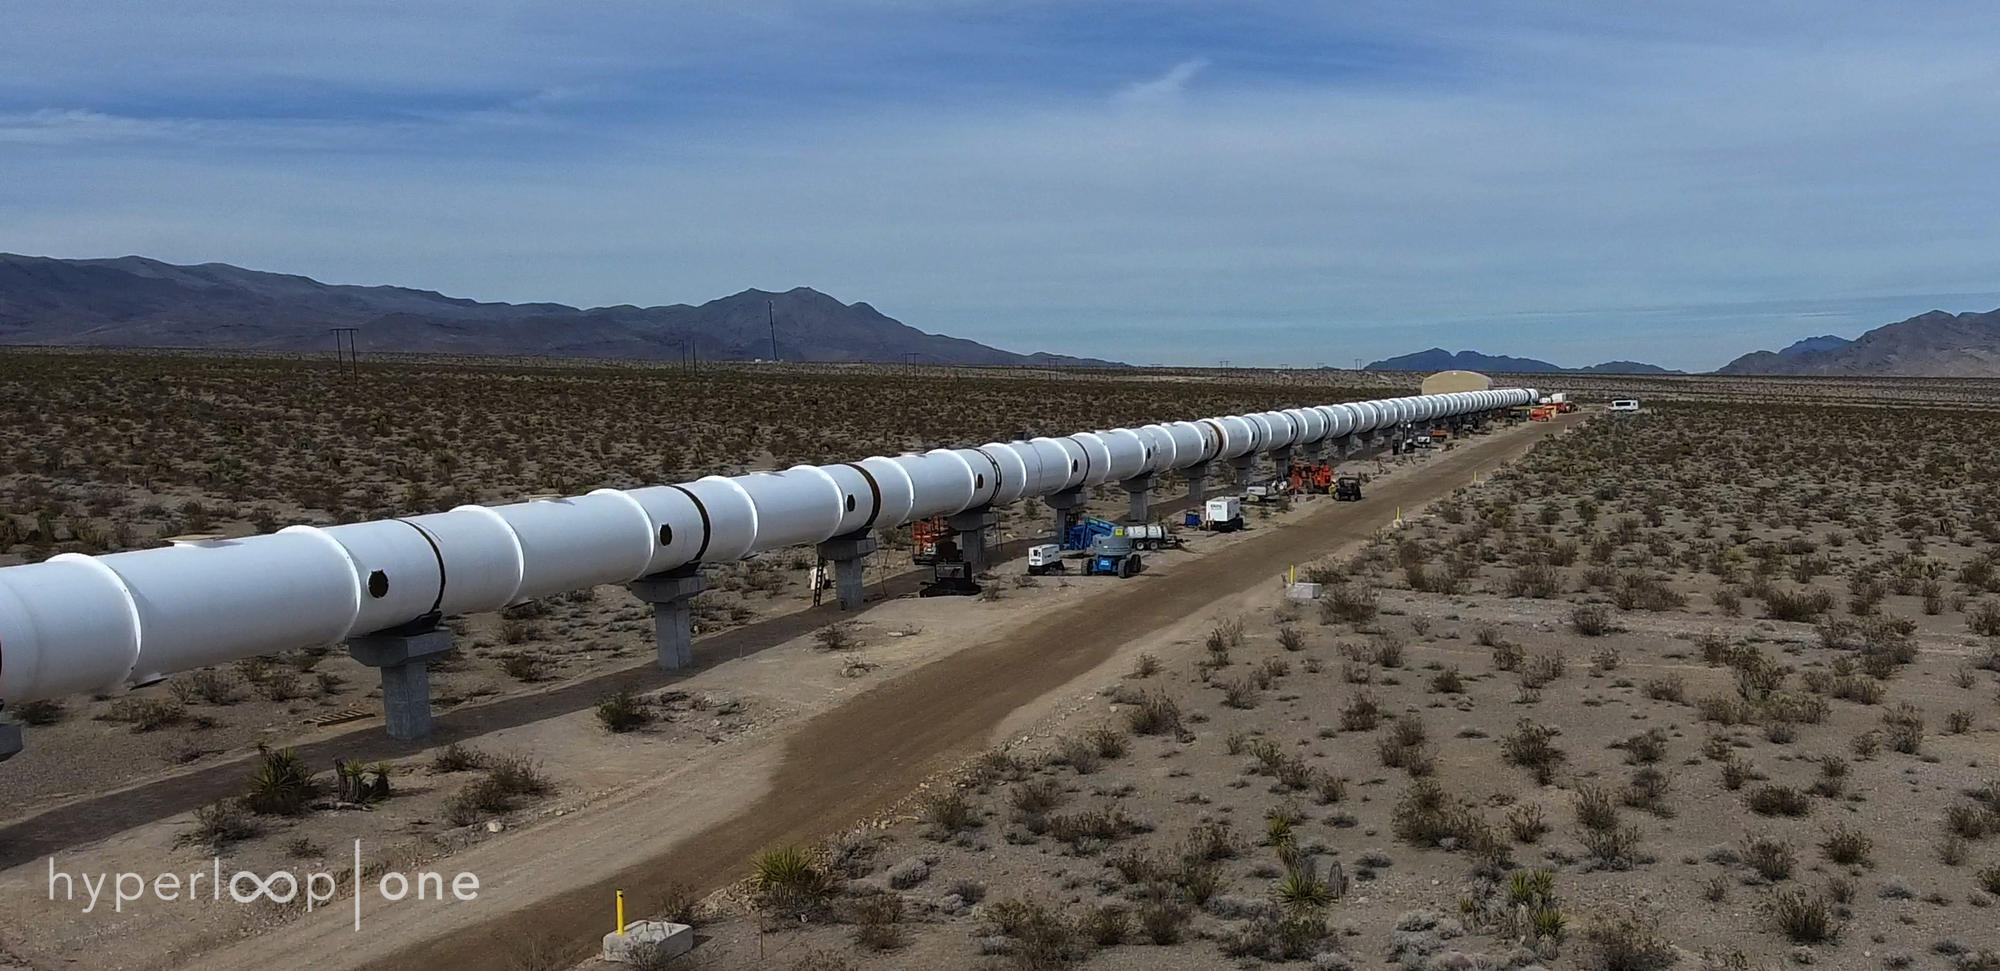 Hyperloop one reveals 11 proposed routes across the u s for Hyperloop italia